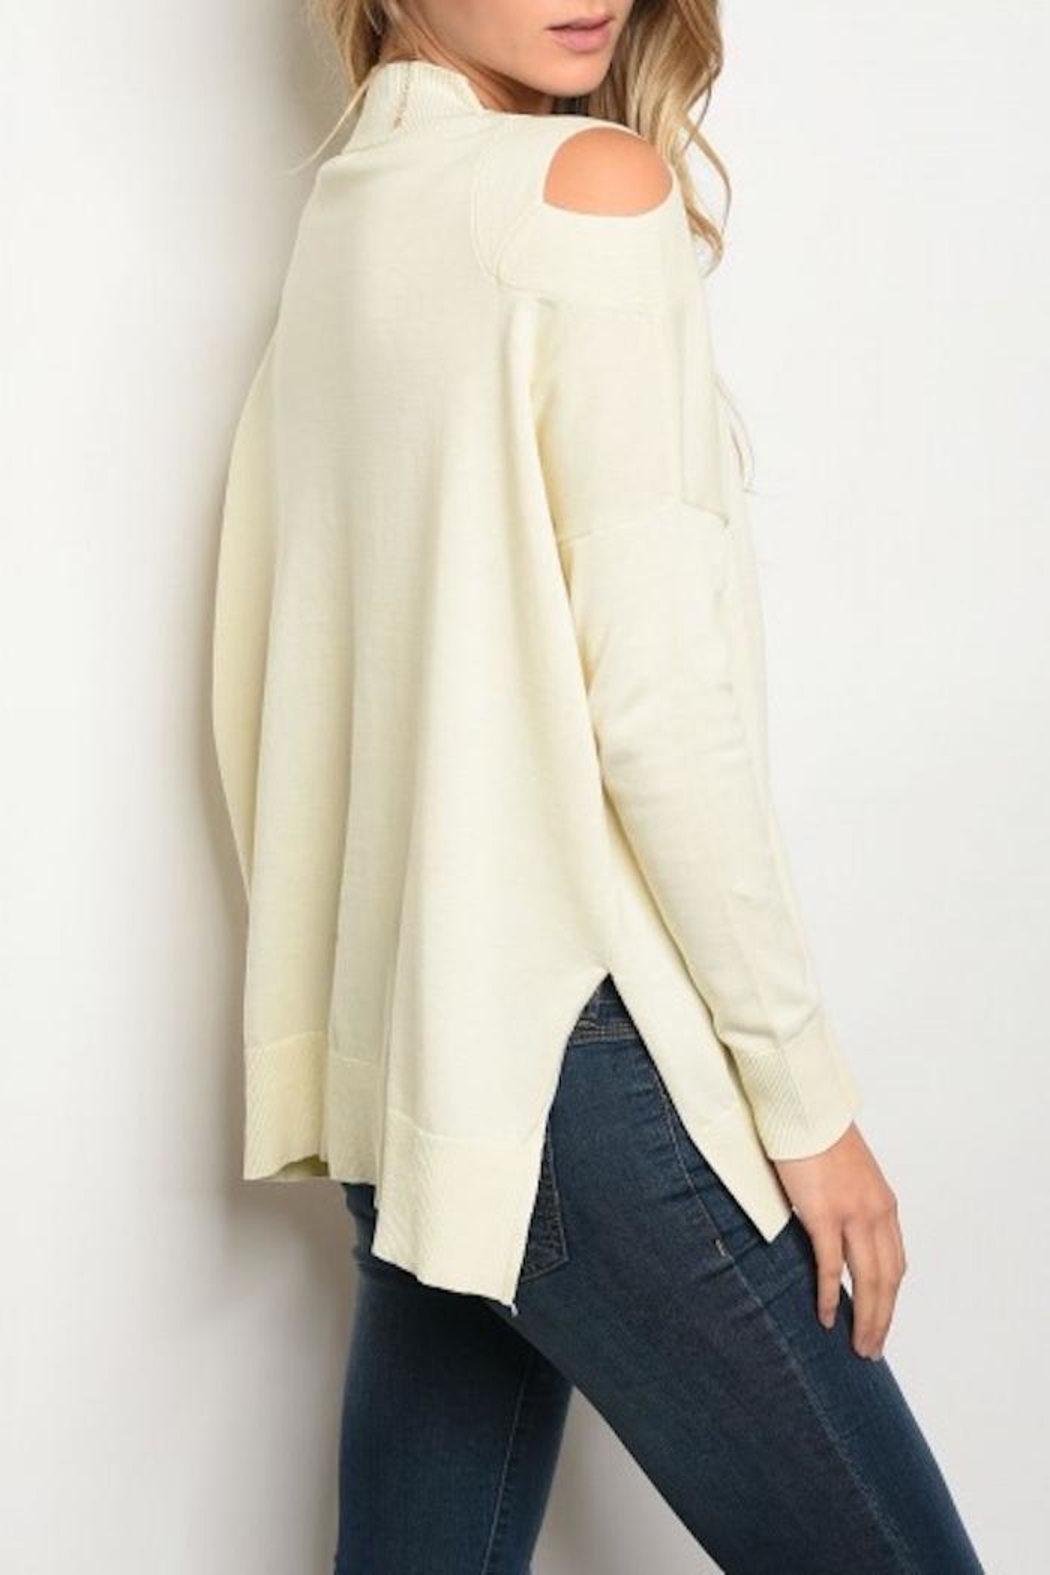 Very J Cutout Shoulder Sweater - Front Full Image